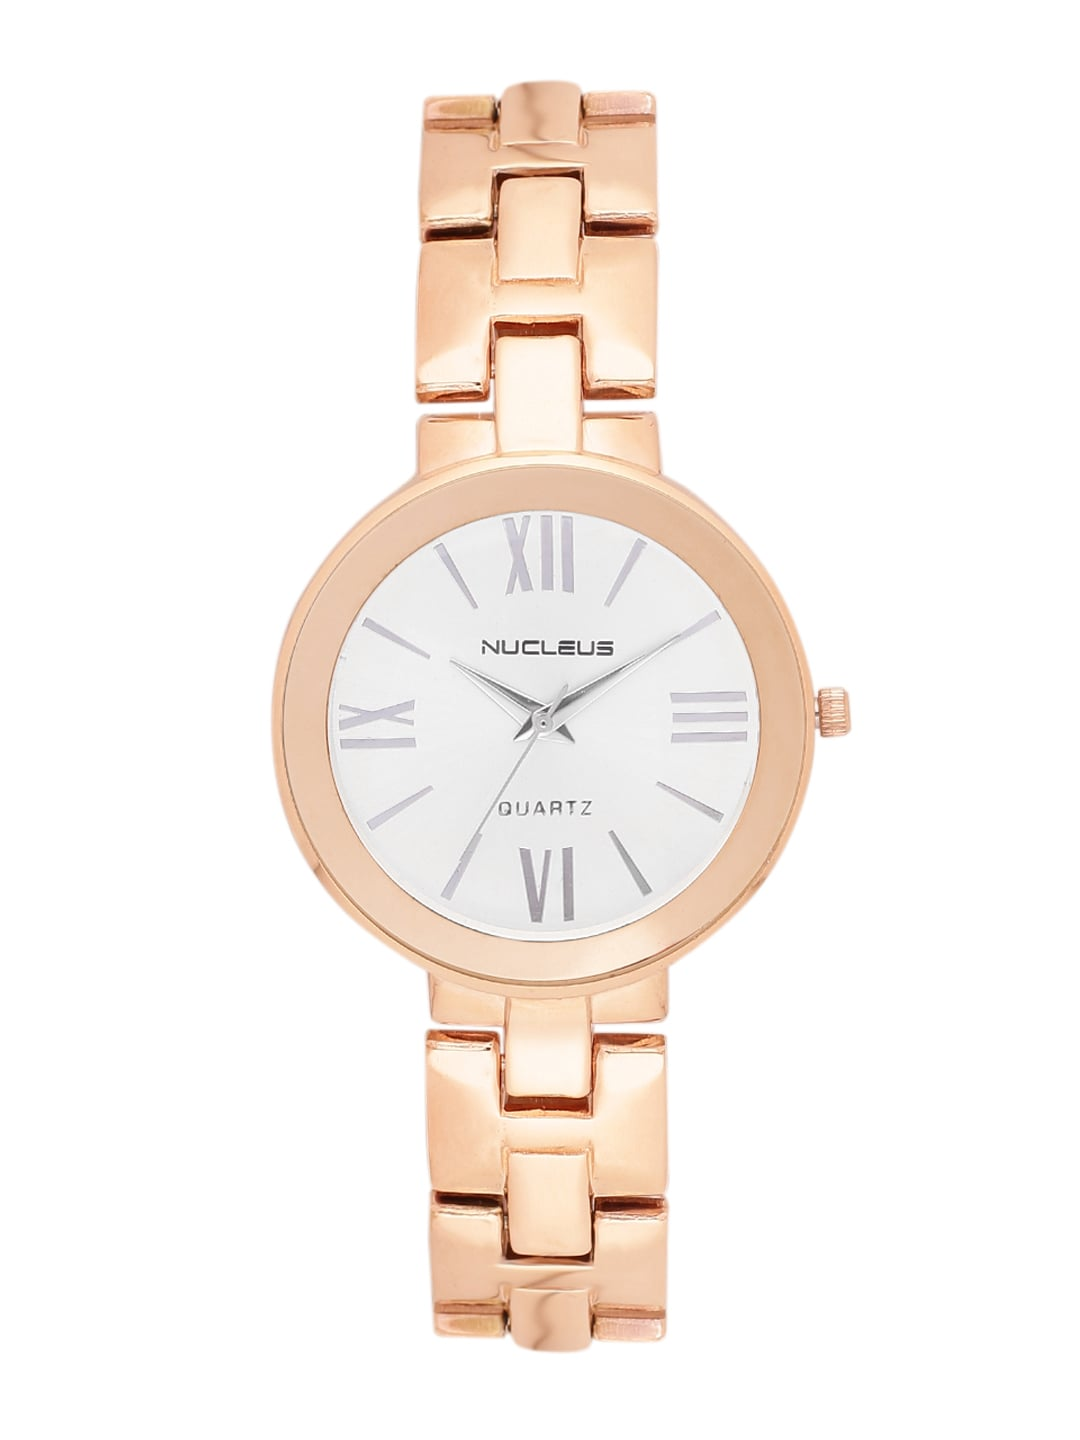 Nucleus Women White Analogue Watch NLLRGWRG image